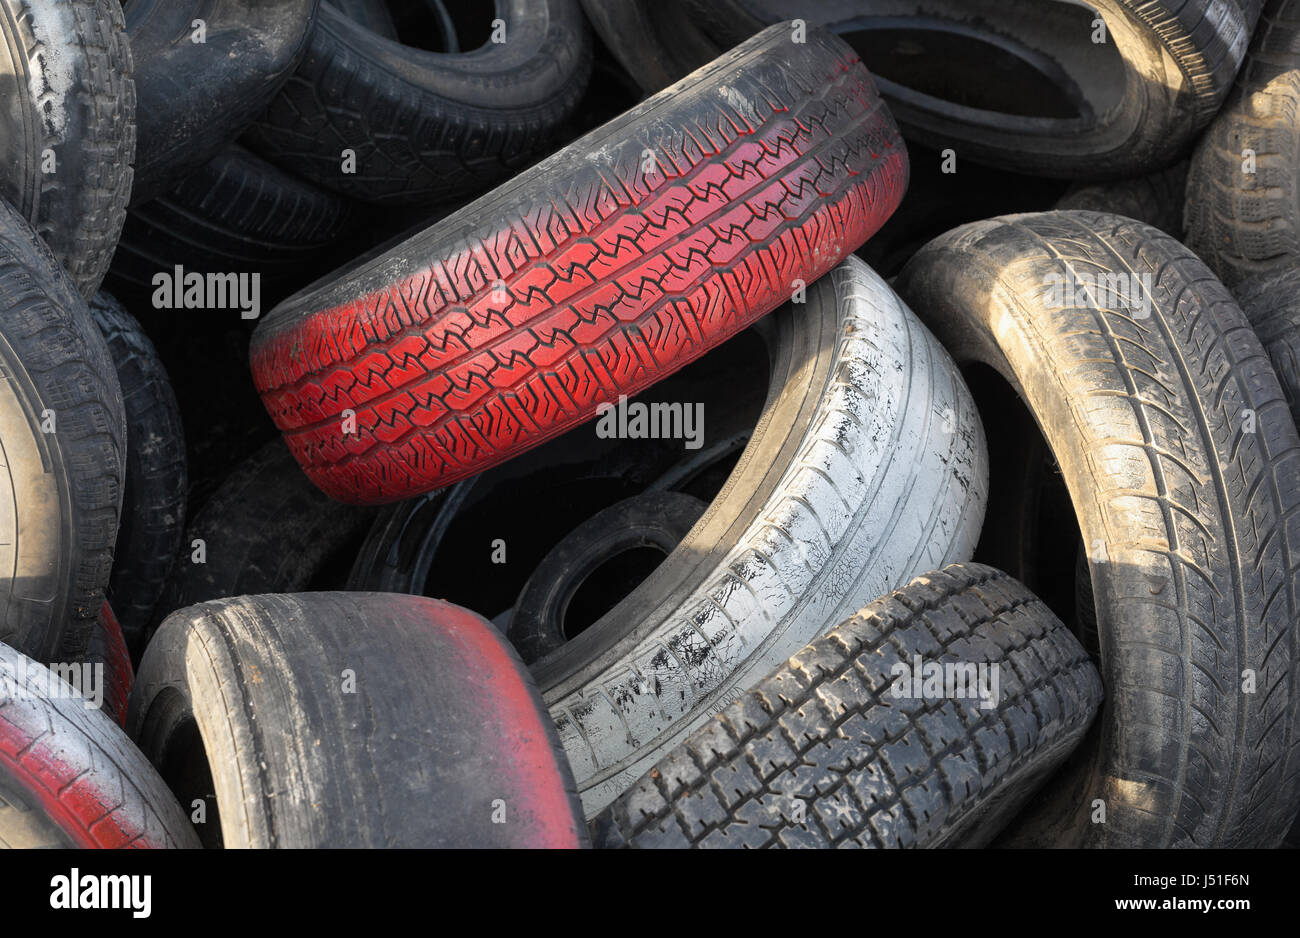 Close up of red car tires with tread in a pile of used tires - Stock Image